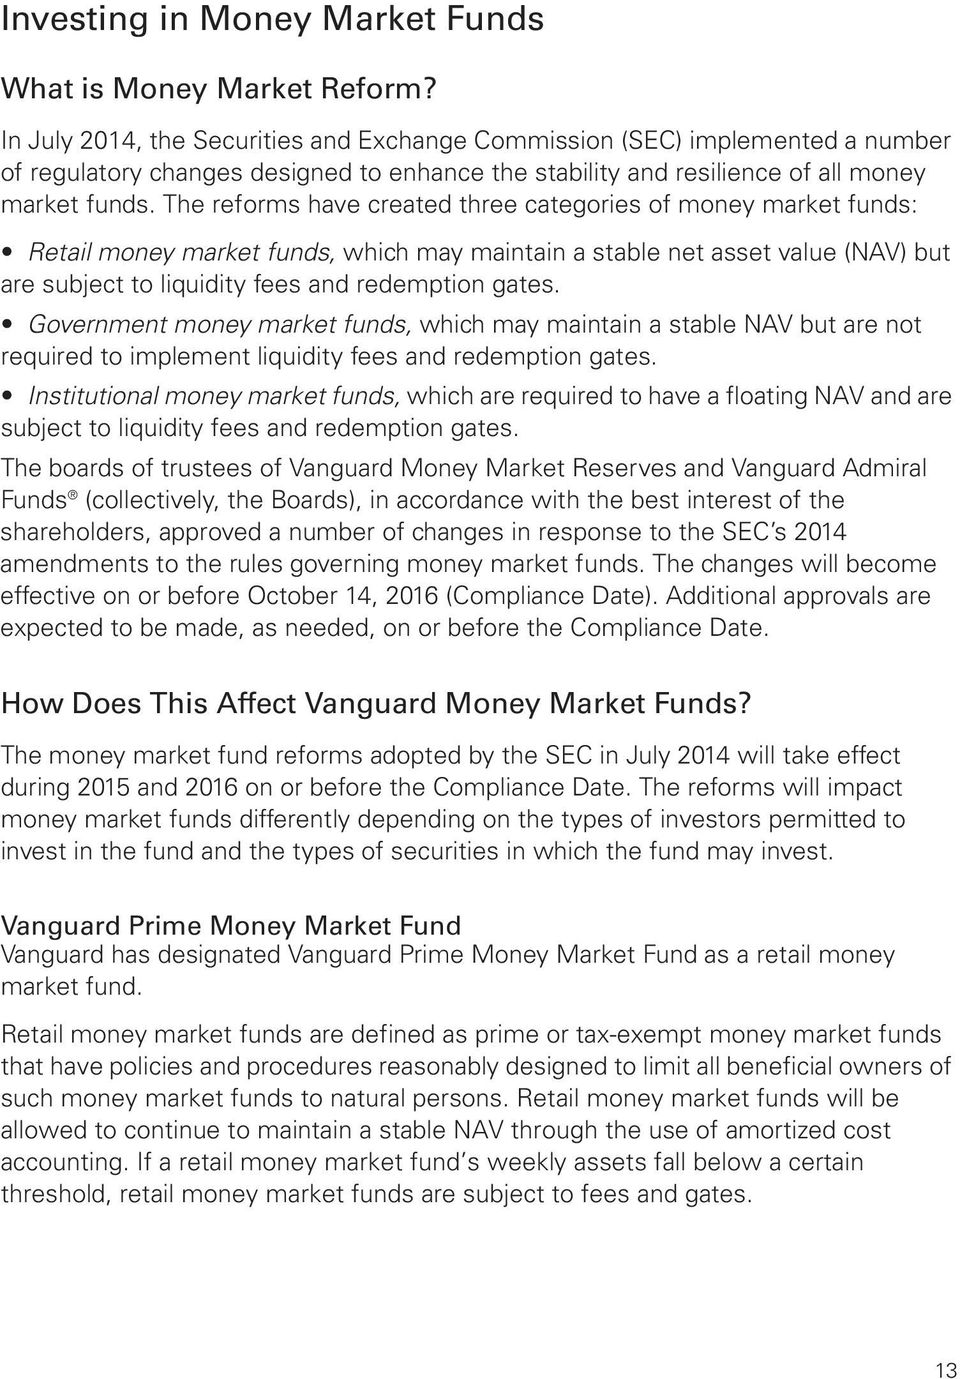 The reforms have created three categories of money market funds: Retail money market funds, which may maintain a stable net asset value (NAV) but are subject to liquidity fees and redemption gates.